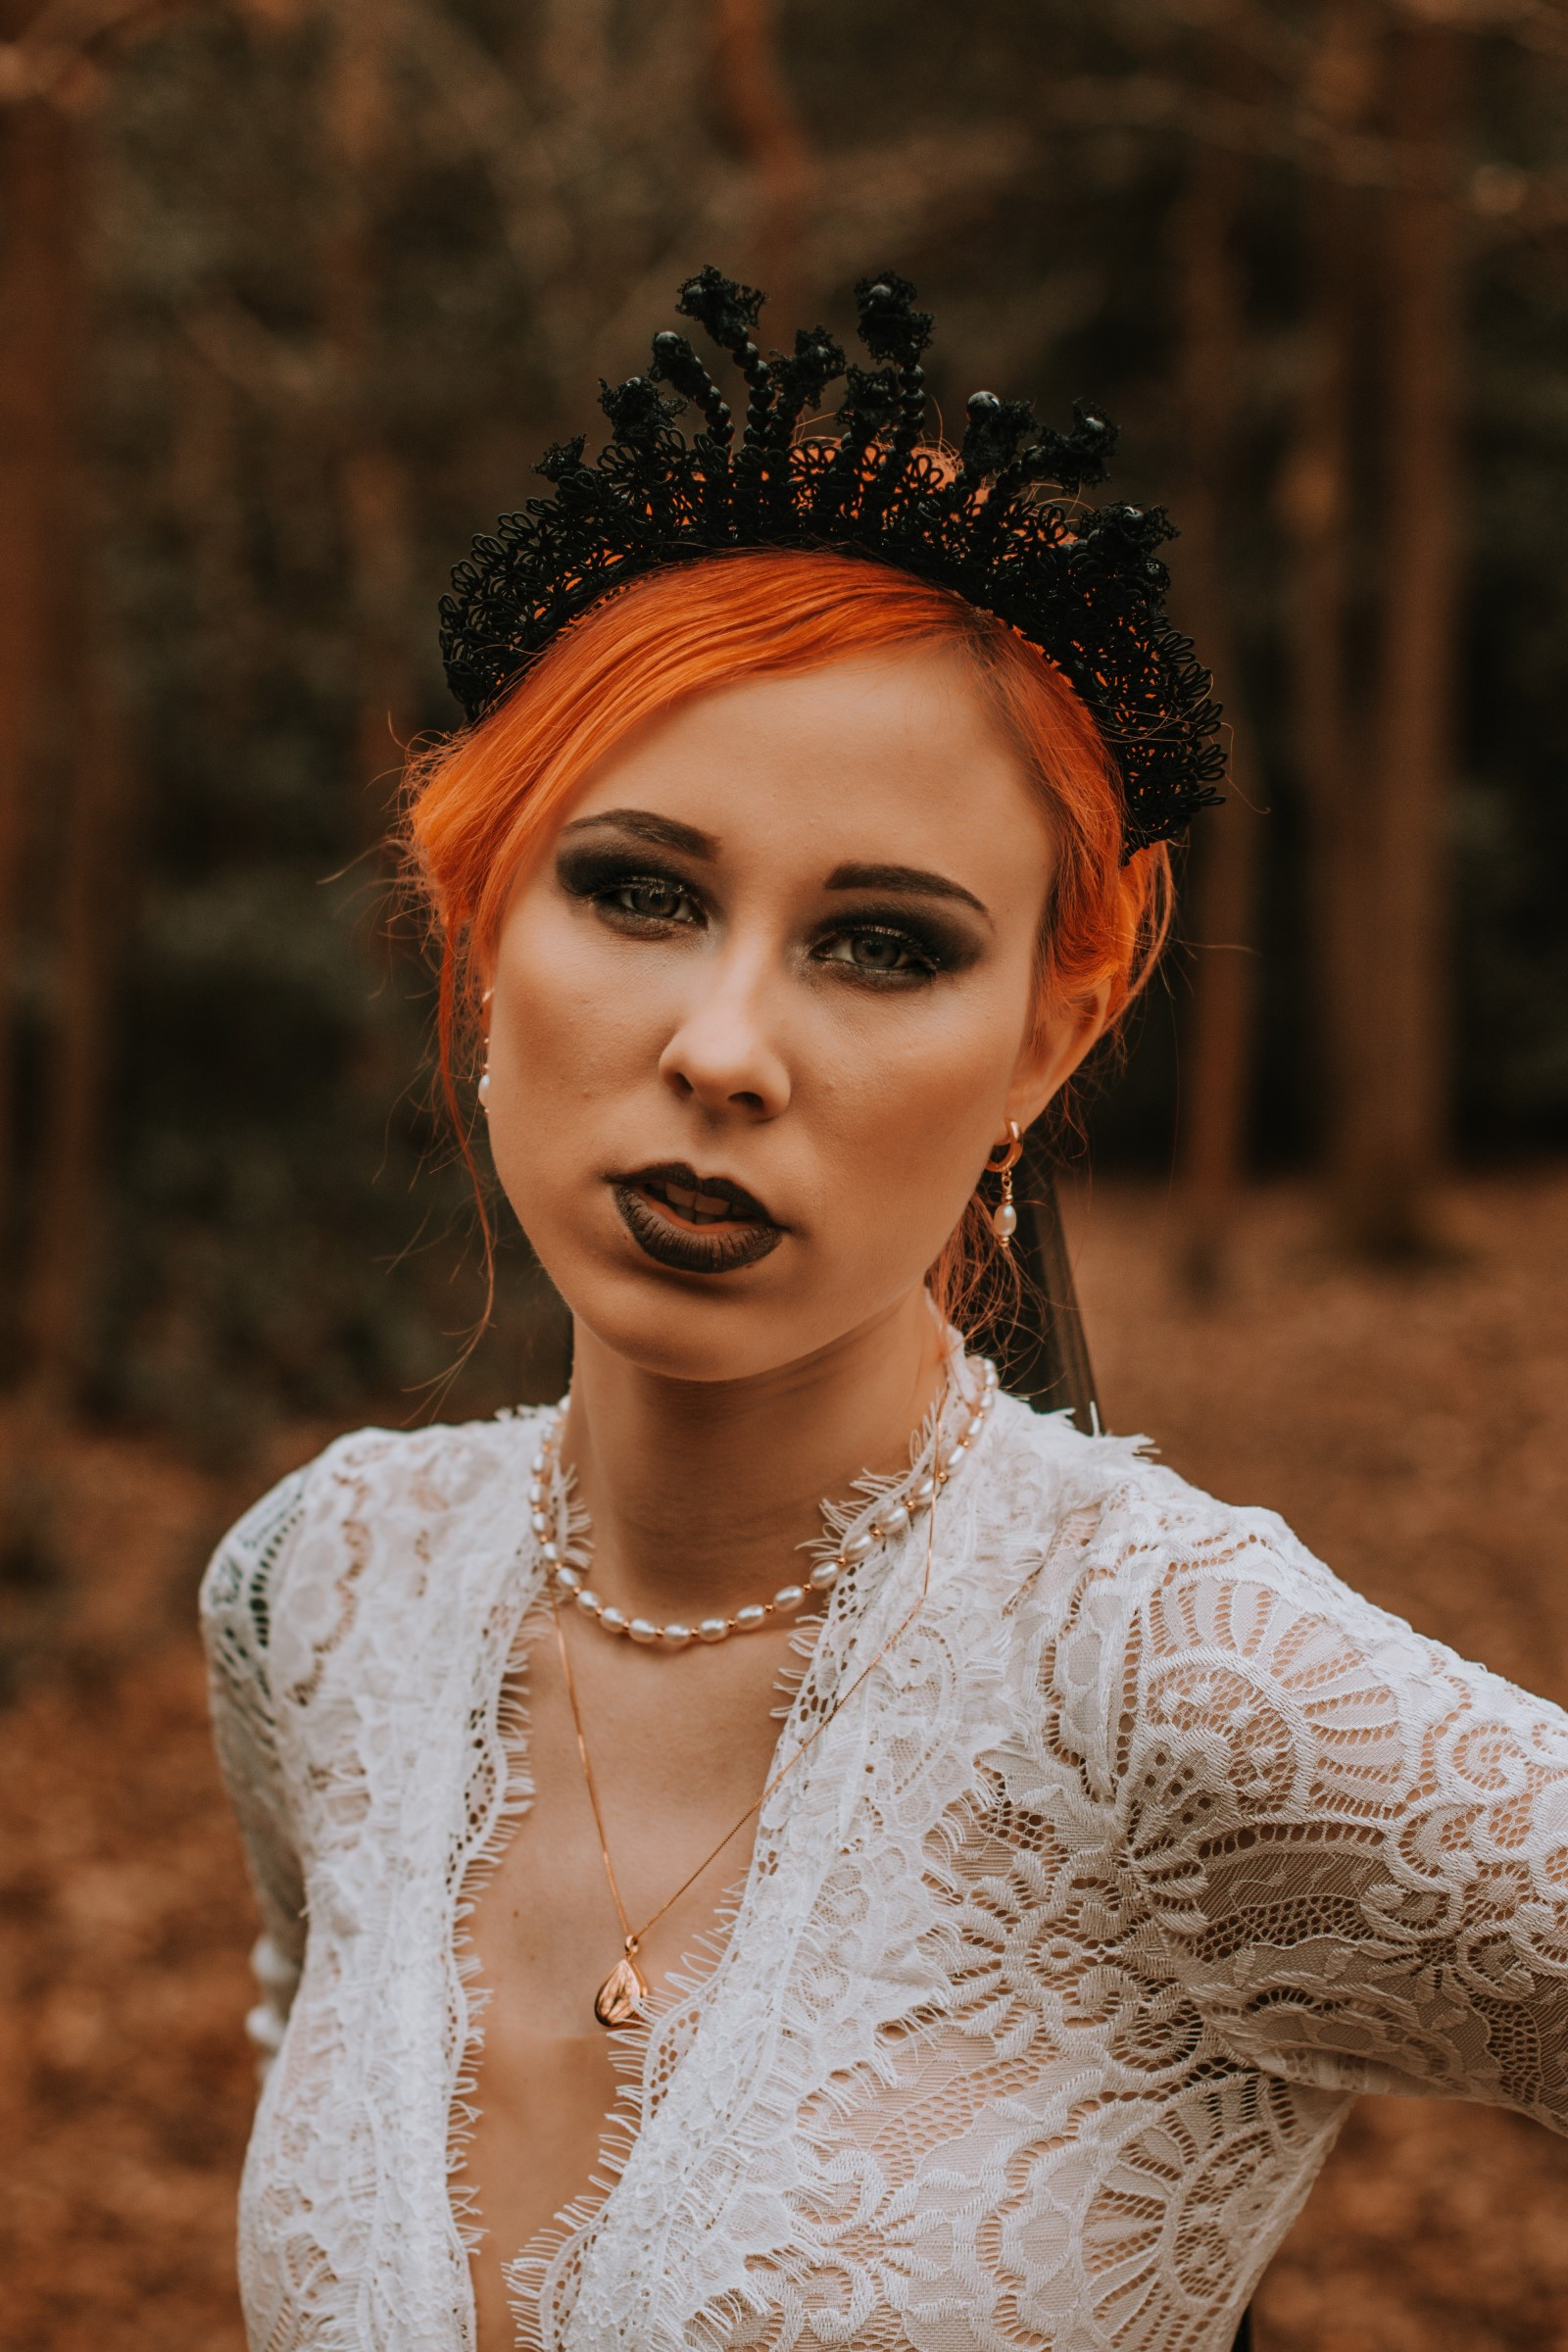 Alternative Forest Wedding - Sammy Leas Retro Emporium -Photography By Wills- alternative wedding - unconventional wedding- edgy woodland wedding- edgy bridal look